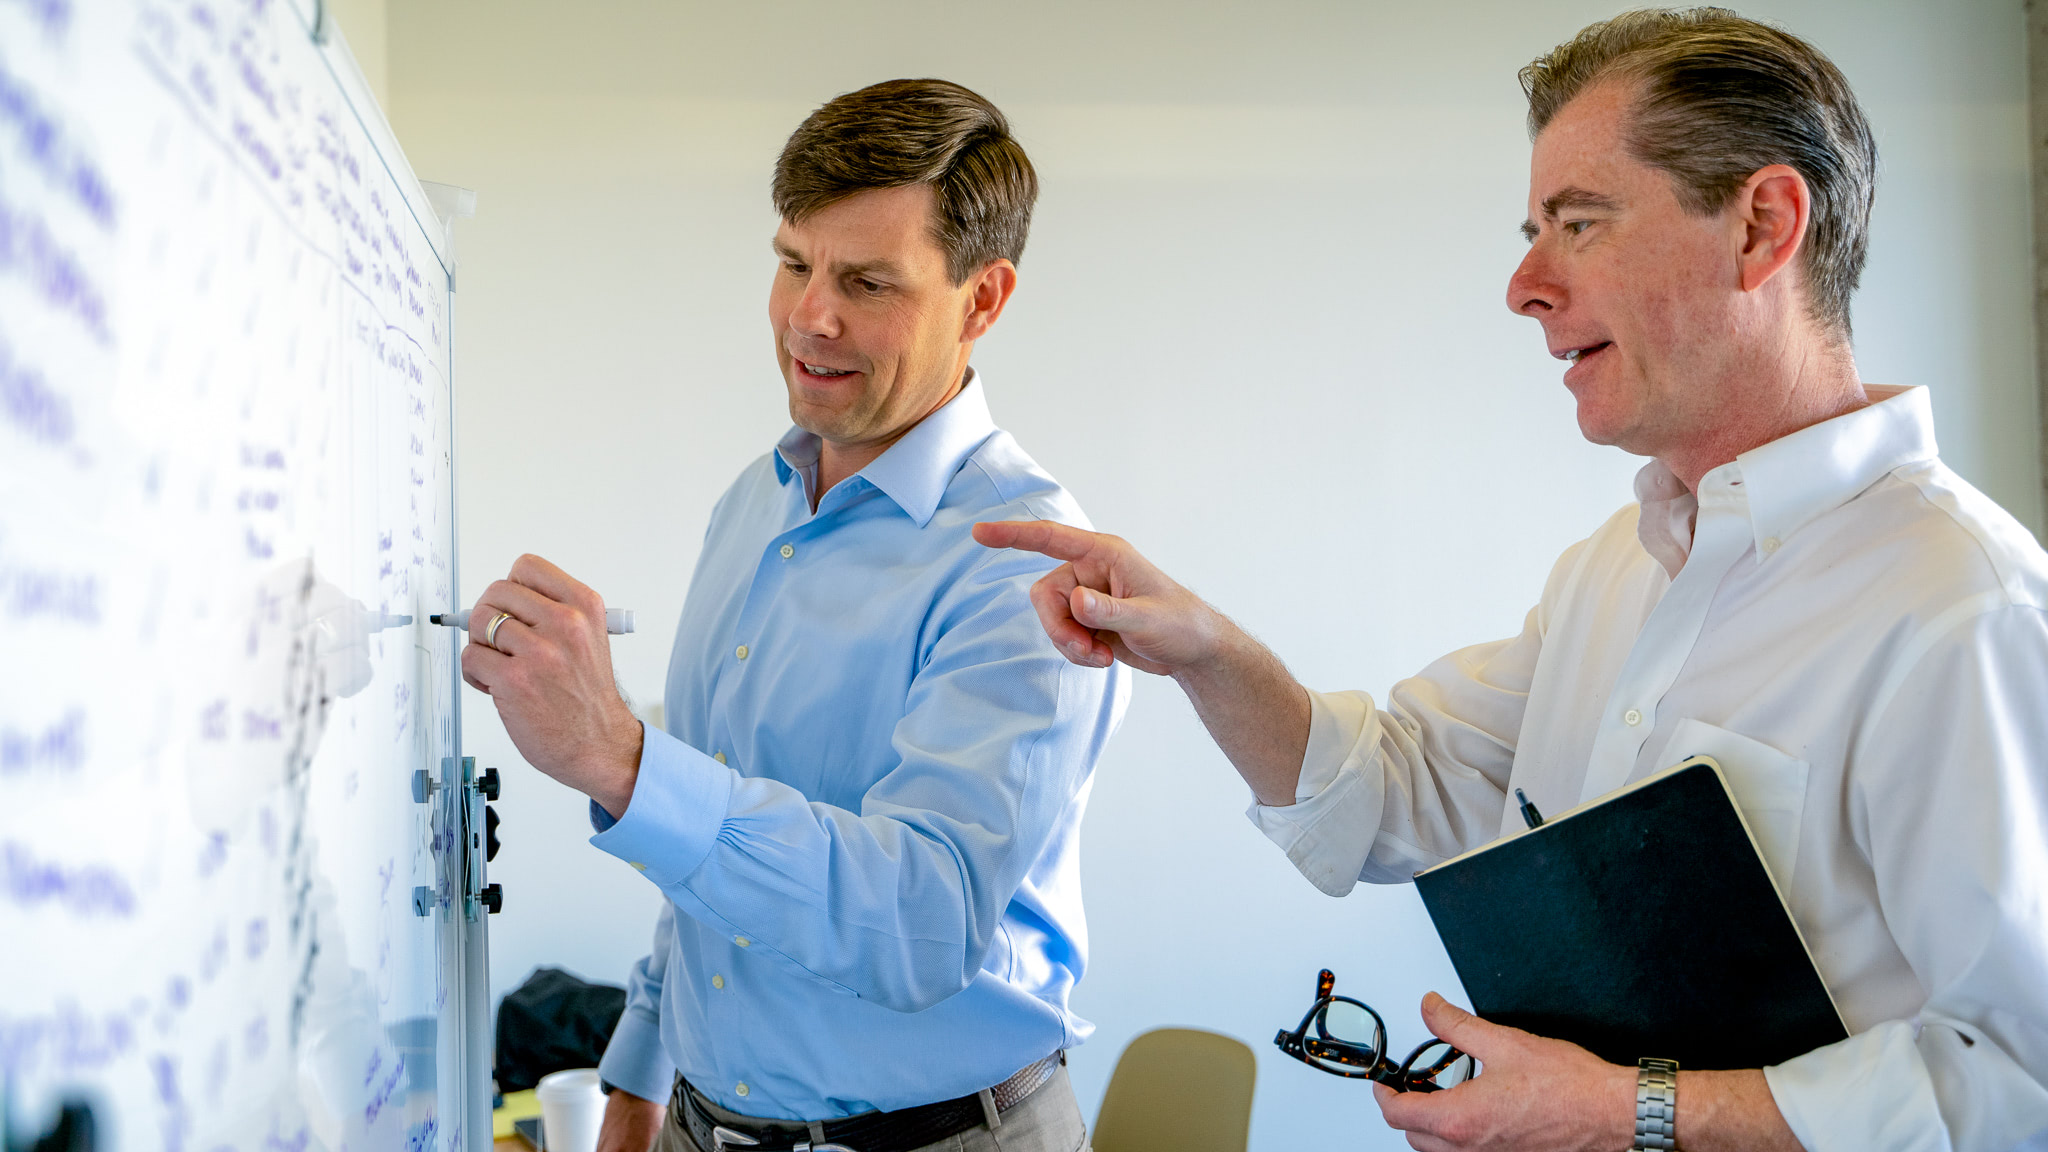 Dura CEOS smiling, meeting and taking notes on a white board